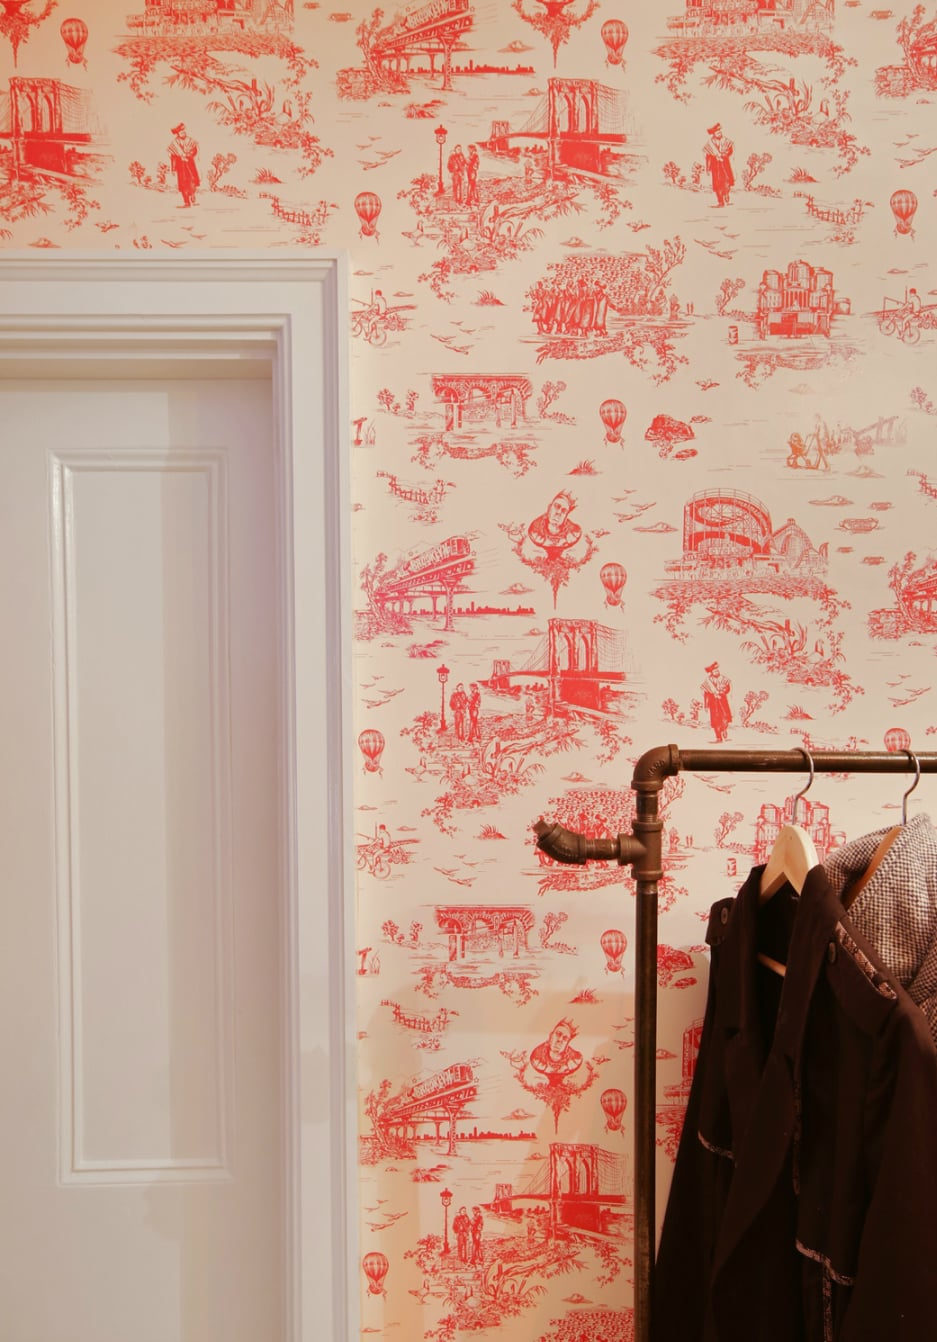 Mike Custom Designed The Brooklyn Themed Toile Wallpaper